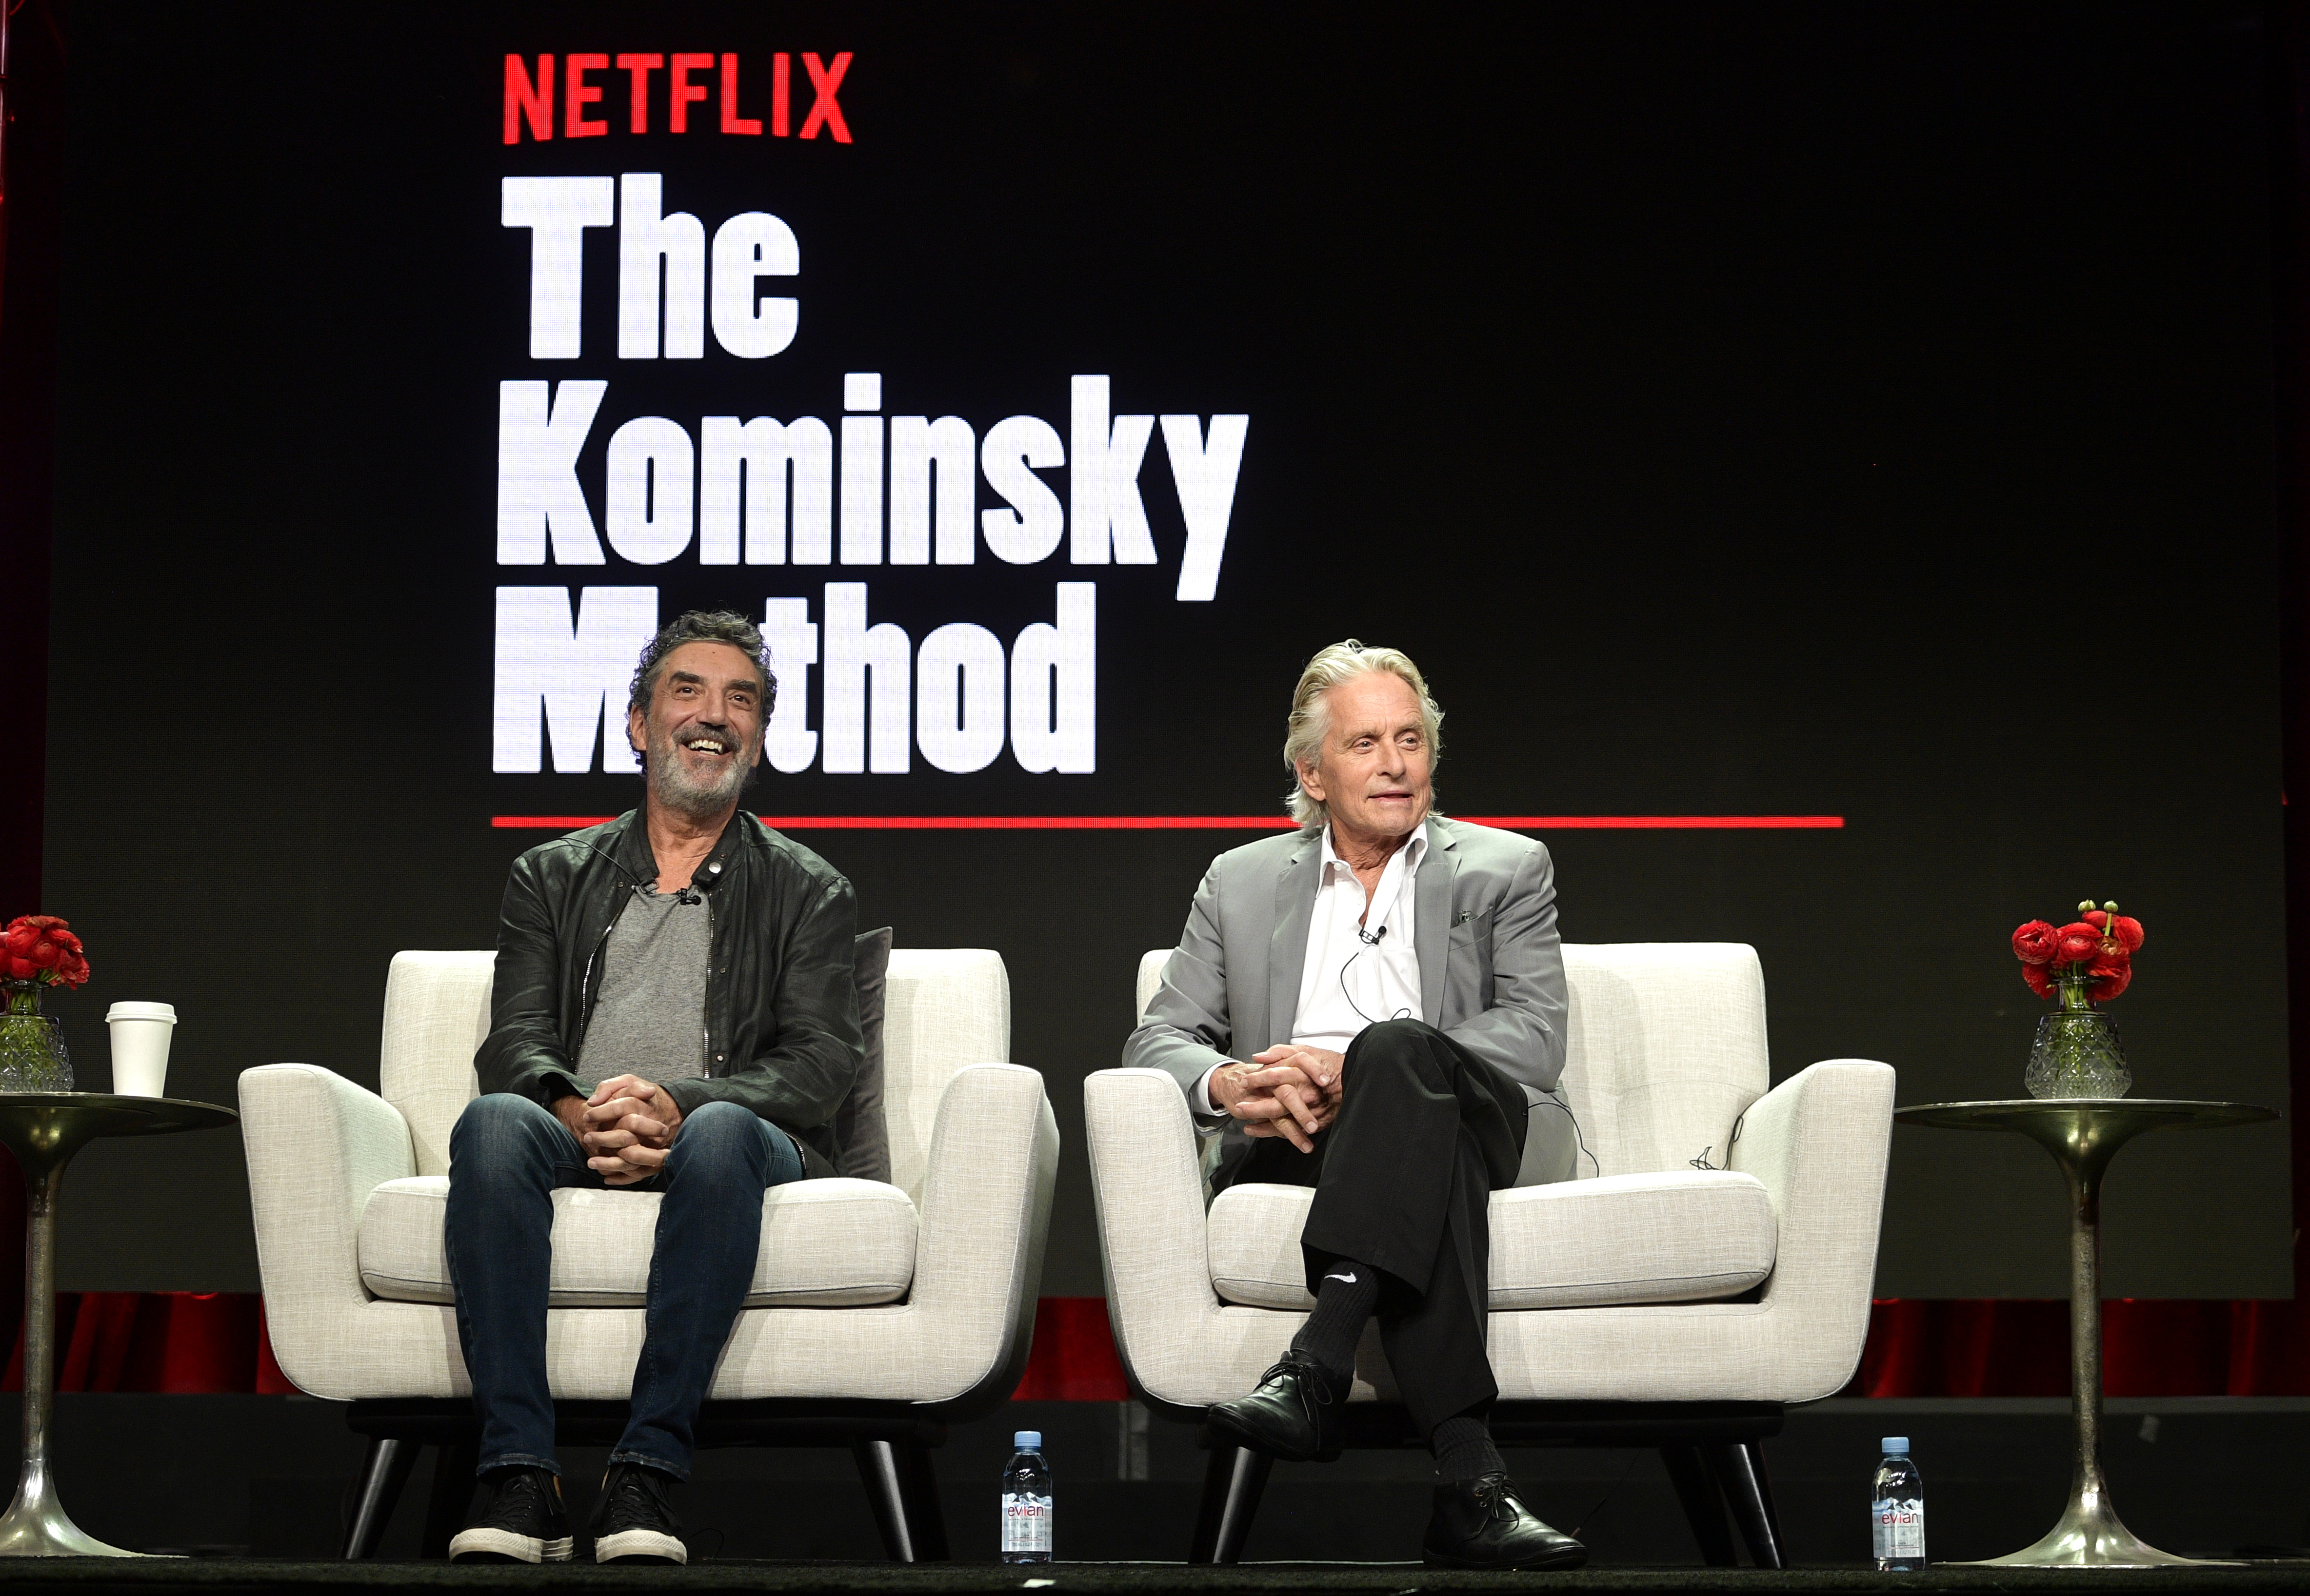 Chuck Lorre and Michael Douglas of 'The Kominsky Method' speak onstage during Netflix TCA 2018 at The Beverly Hilton Hotel on July 29, 2018 in Beverly Hills, California.